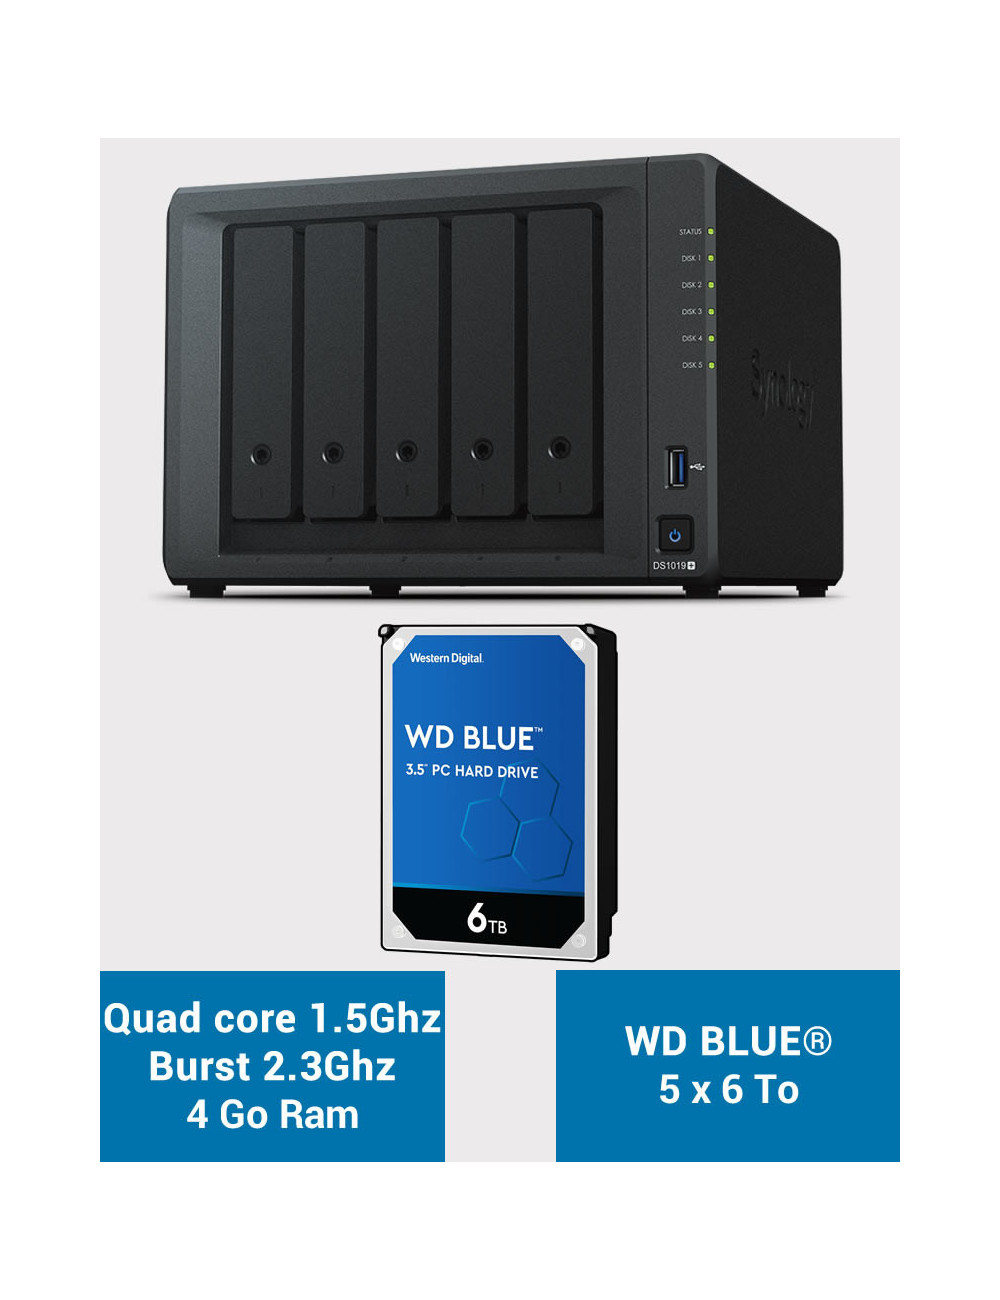 Synology DS1019+ Serveur NAS WD BLUE 30To (5x6To)